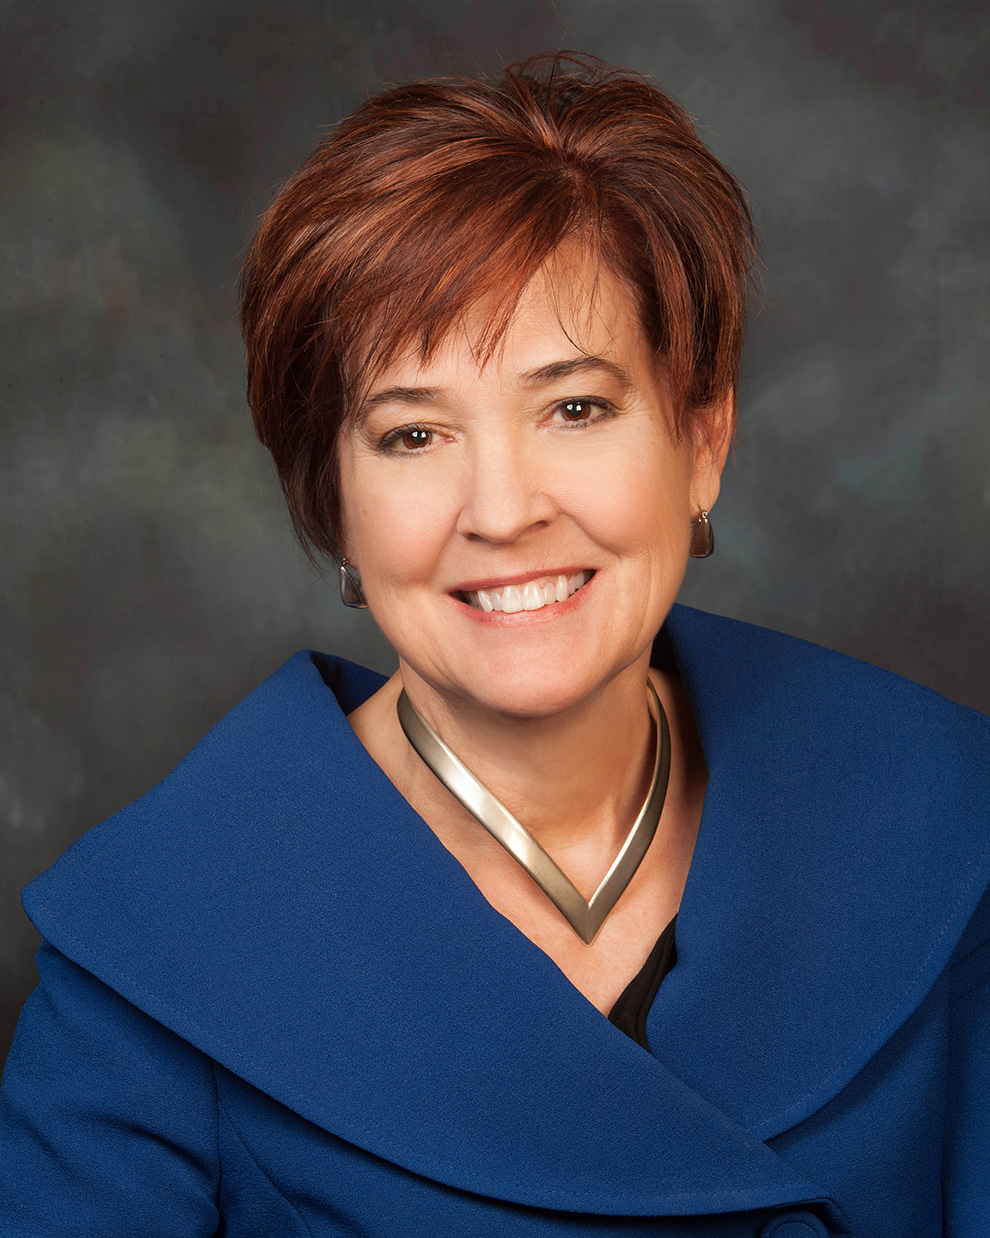 A portrait of Bonnie Suderman, a smiling woman with short brown hair, wearing a blue jacket.